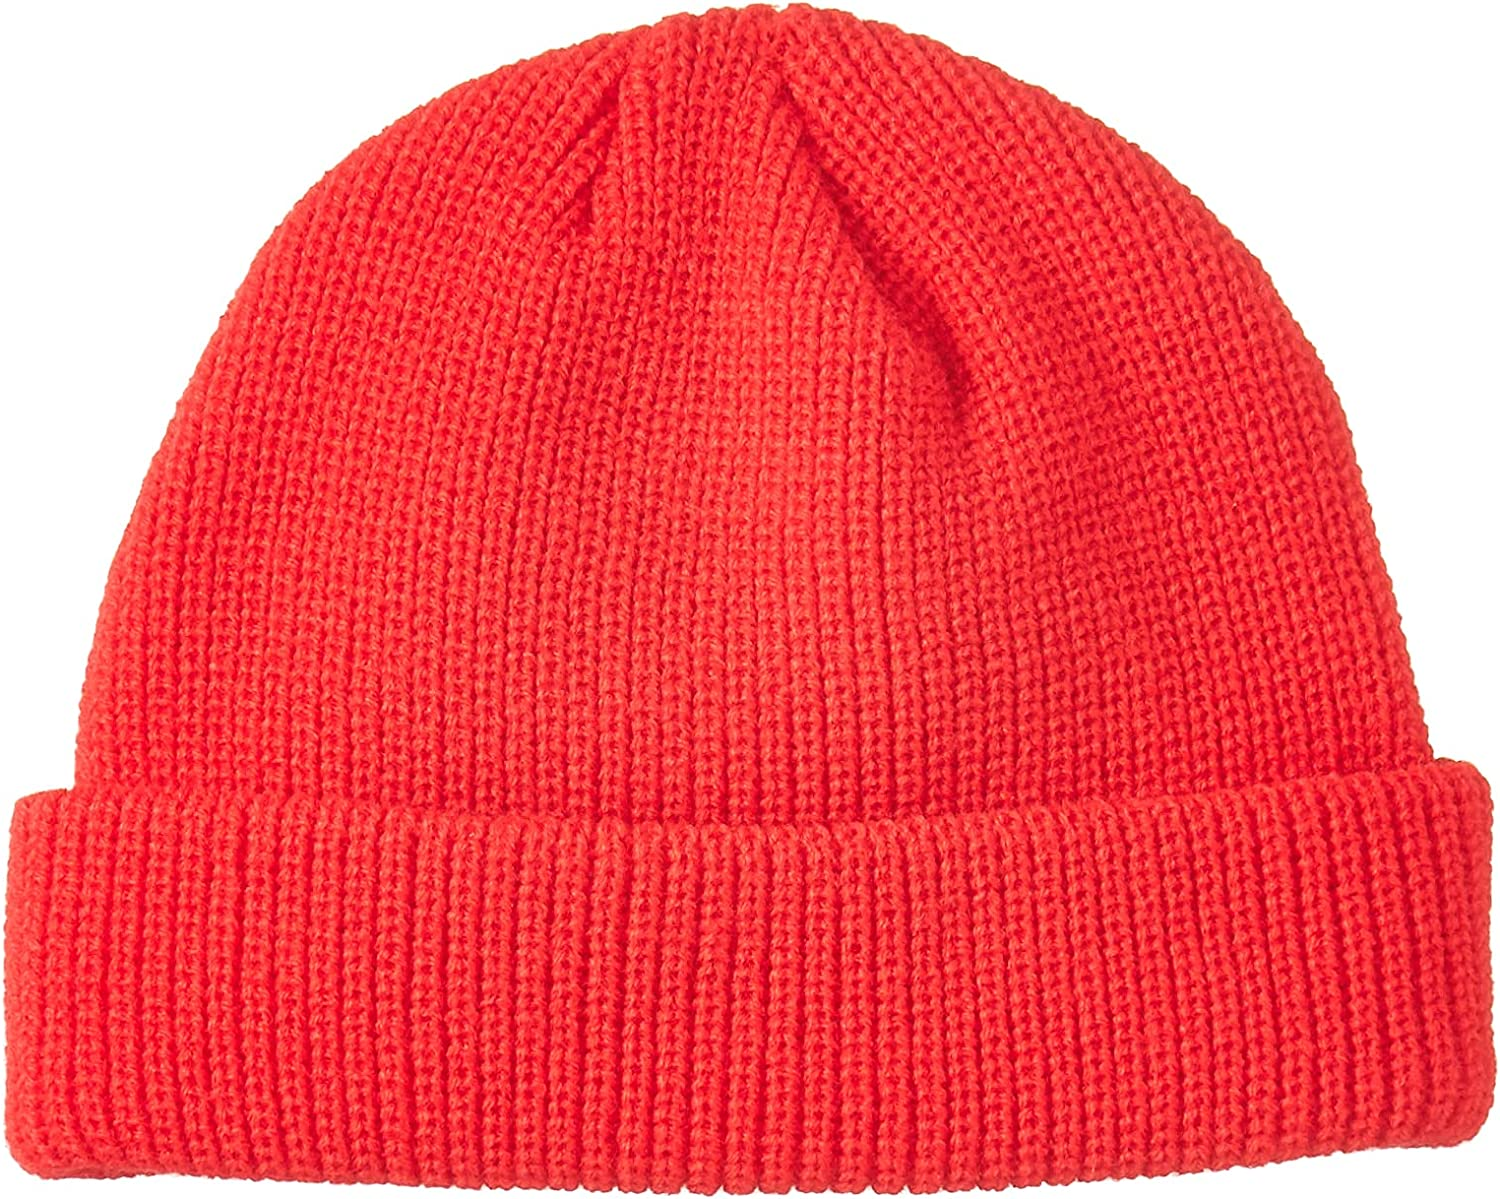 FAZLIY Unisex Sales of SALE items from Cheap mail order shopping new works Short Fisherman Beanie Knit Cuff Warm Hats Winter